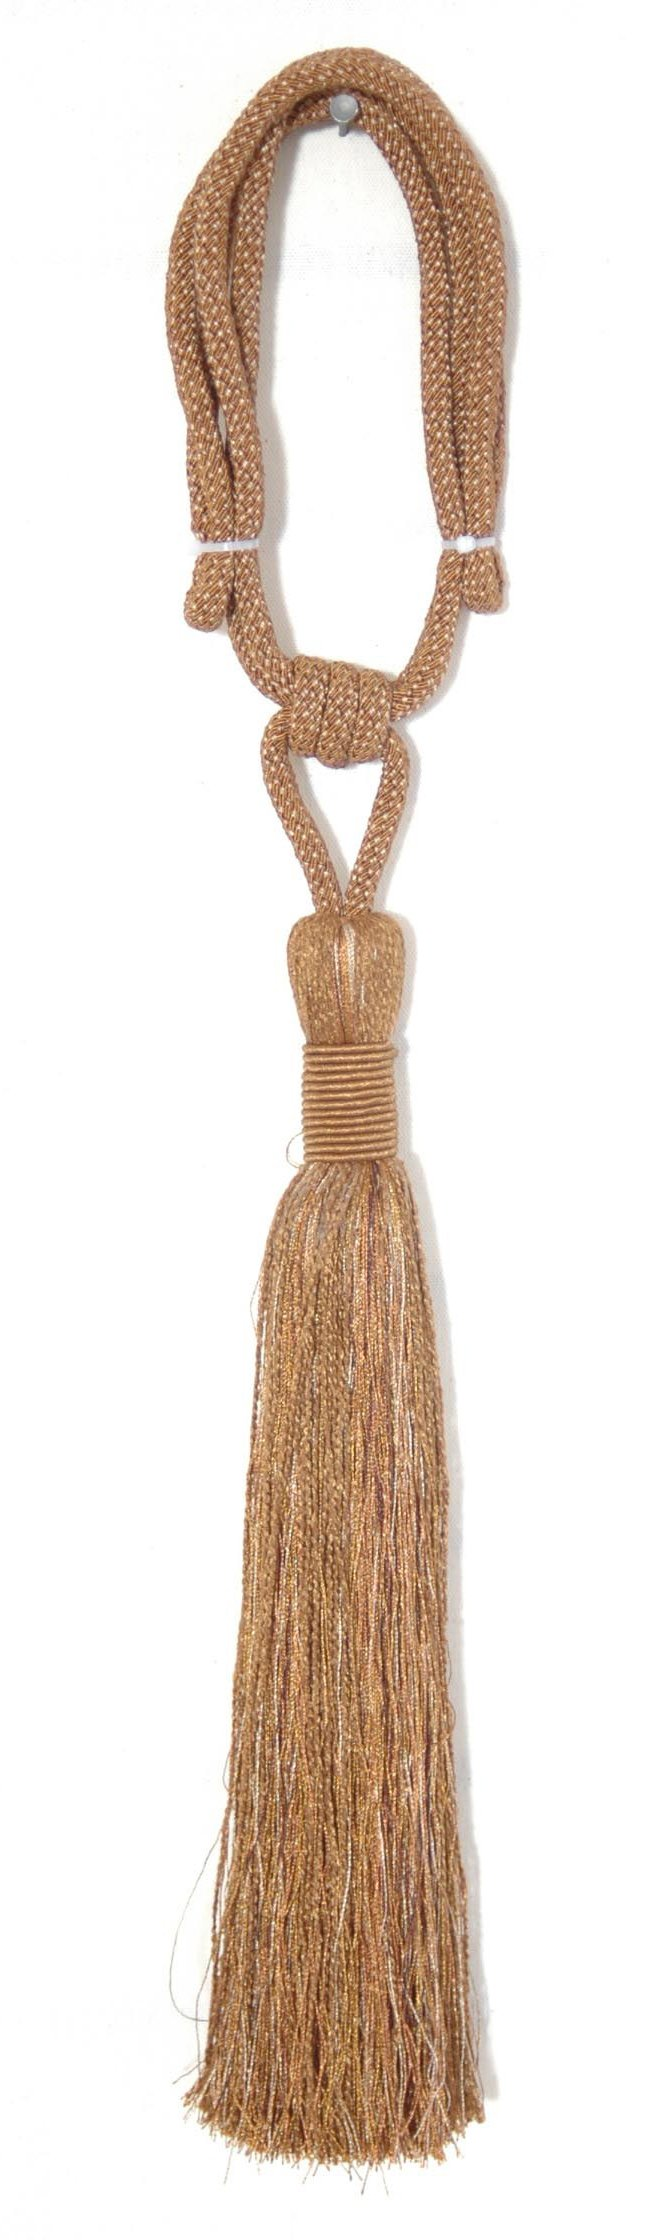 India House 79967 Vedi Tieback with 15-Inch Single Tassel and 30-Inch Cord, Earthtone